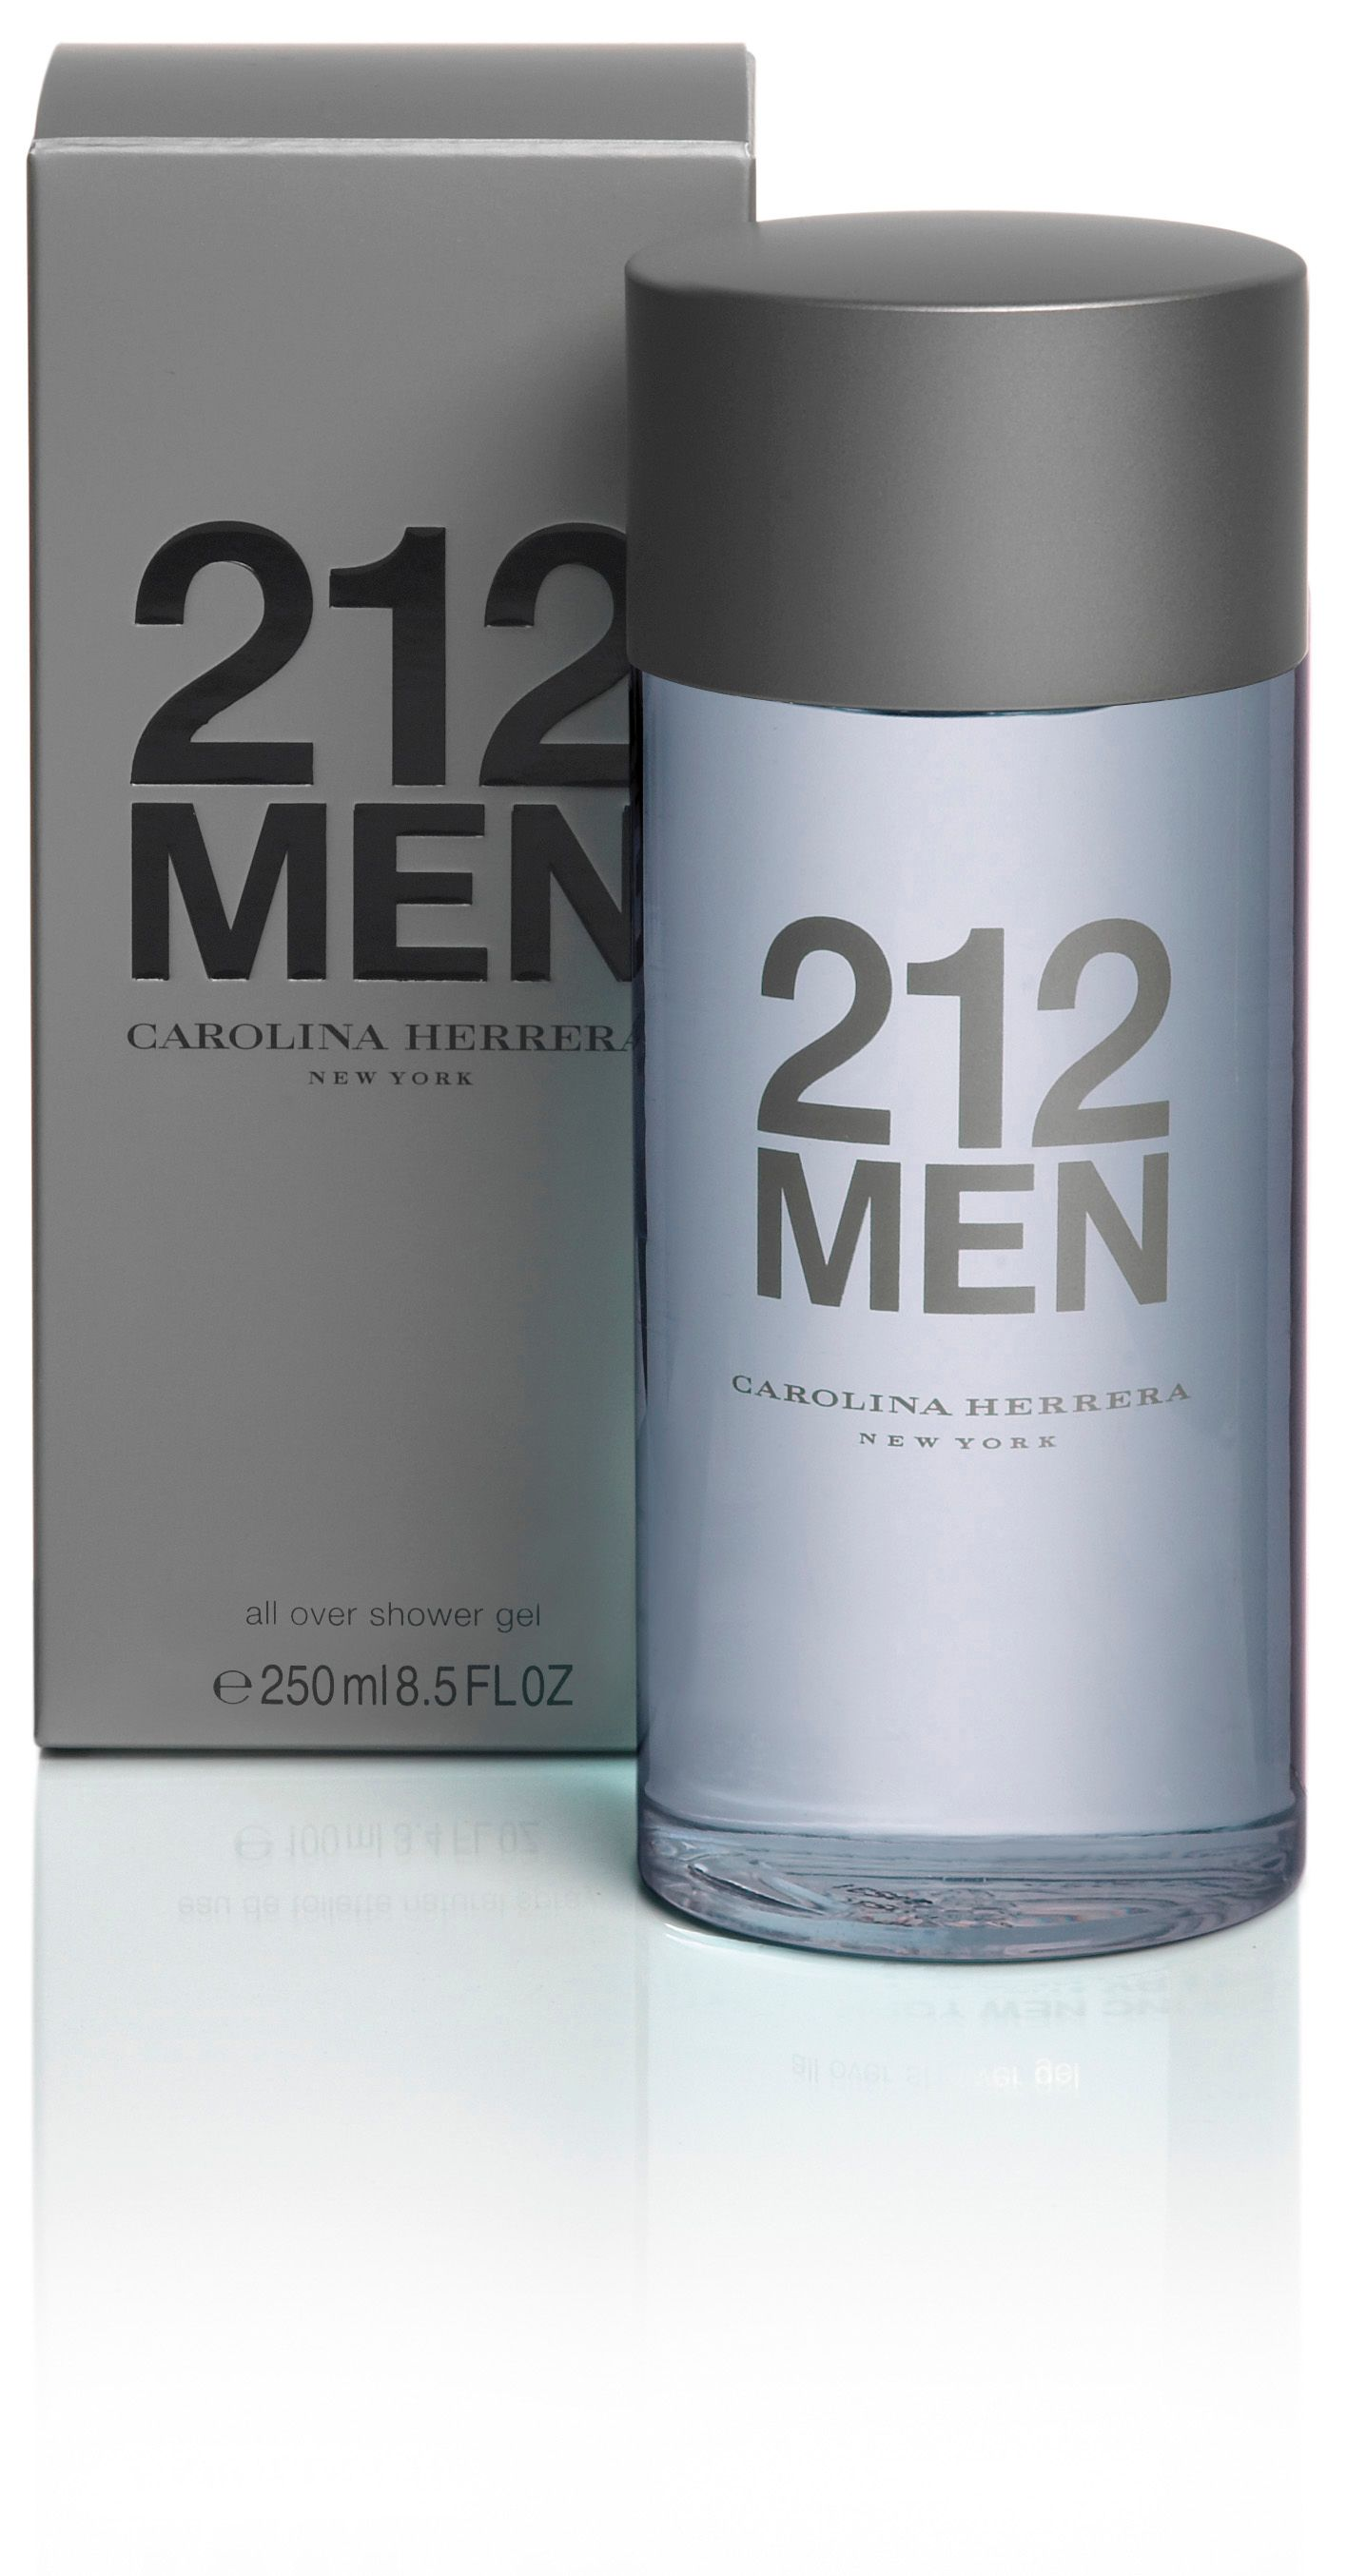 Carolina Herrera 250ml 212 mens shower gel product image